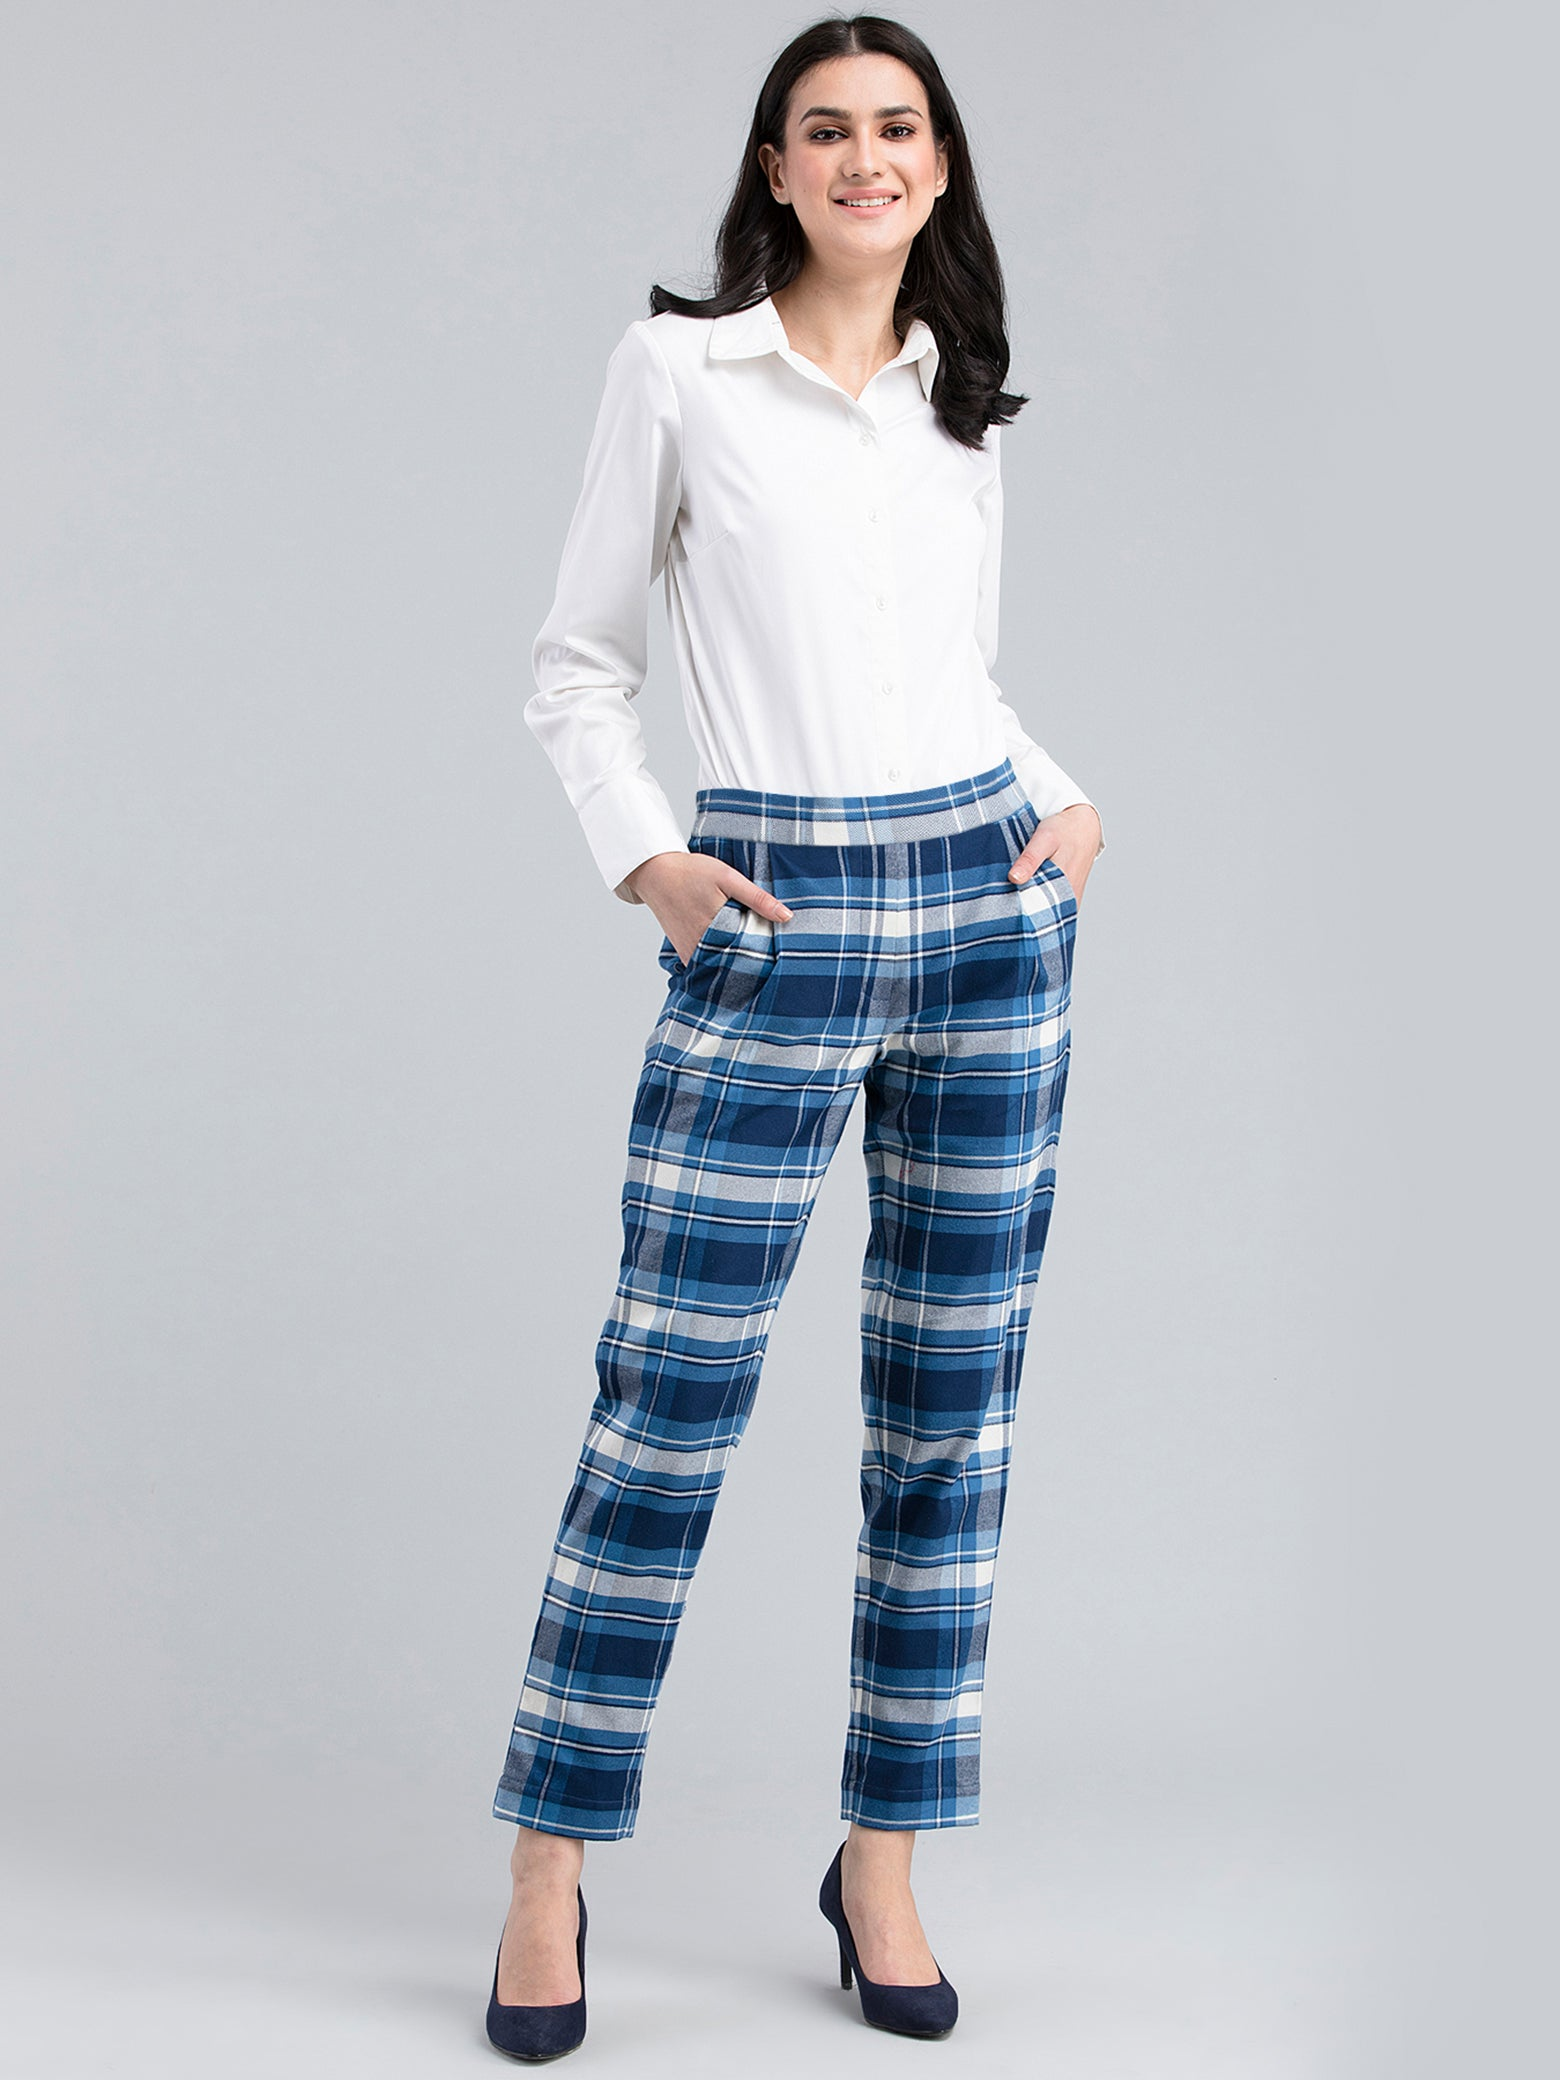 Cotton Wool Plaid Pants - Blue and White